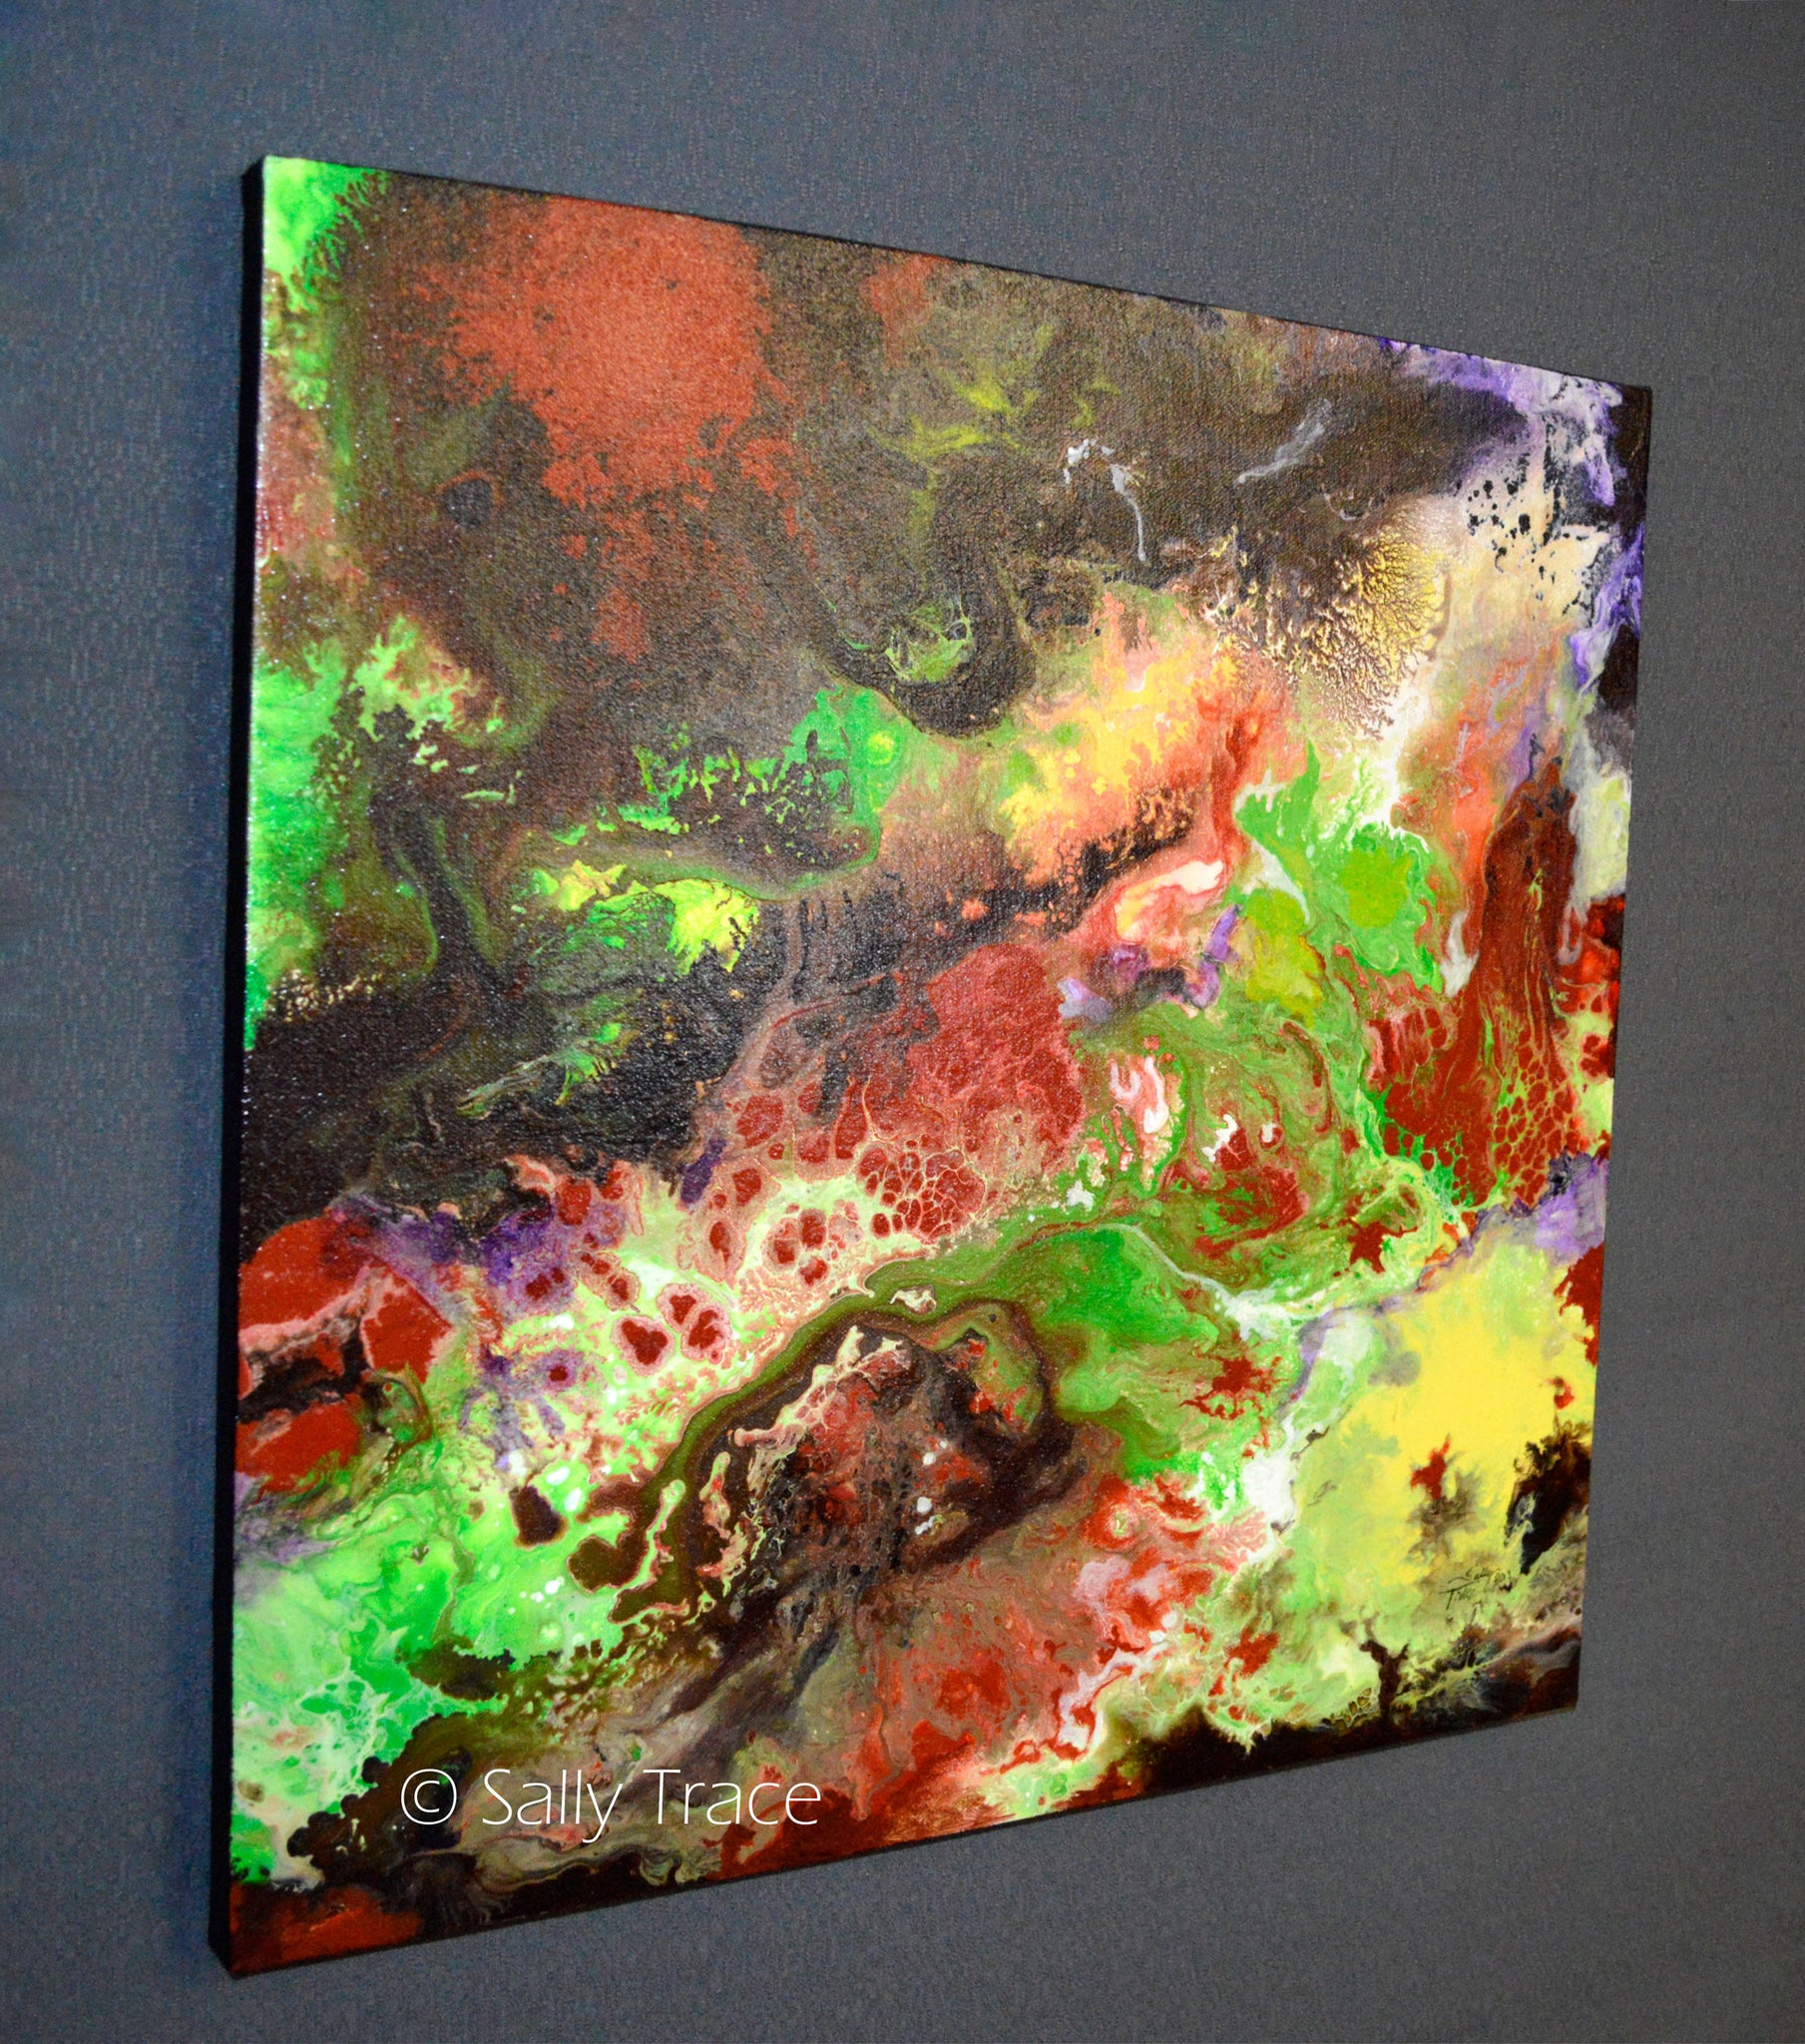 Strata, original fluid painting by Sally Trace, side view